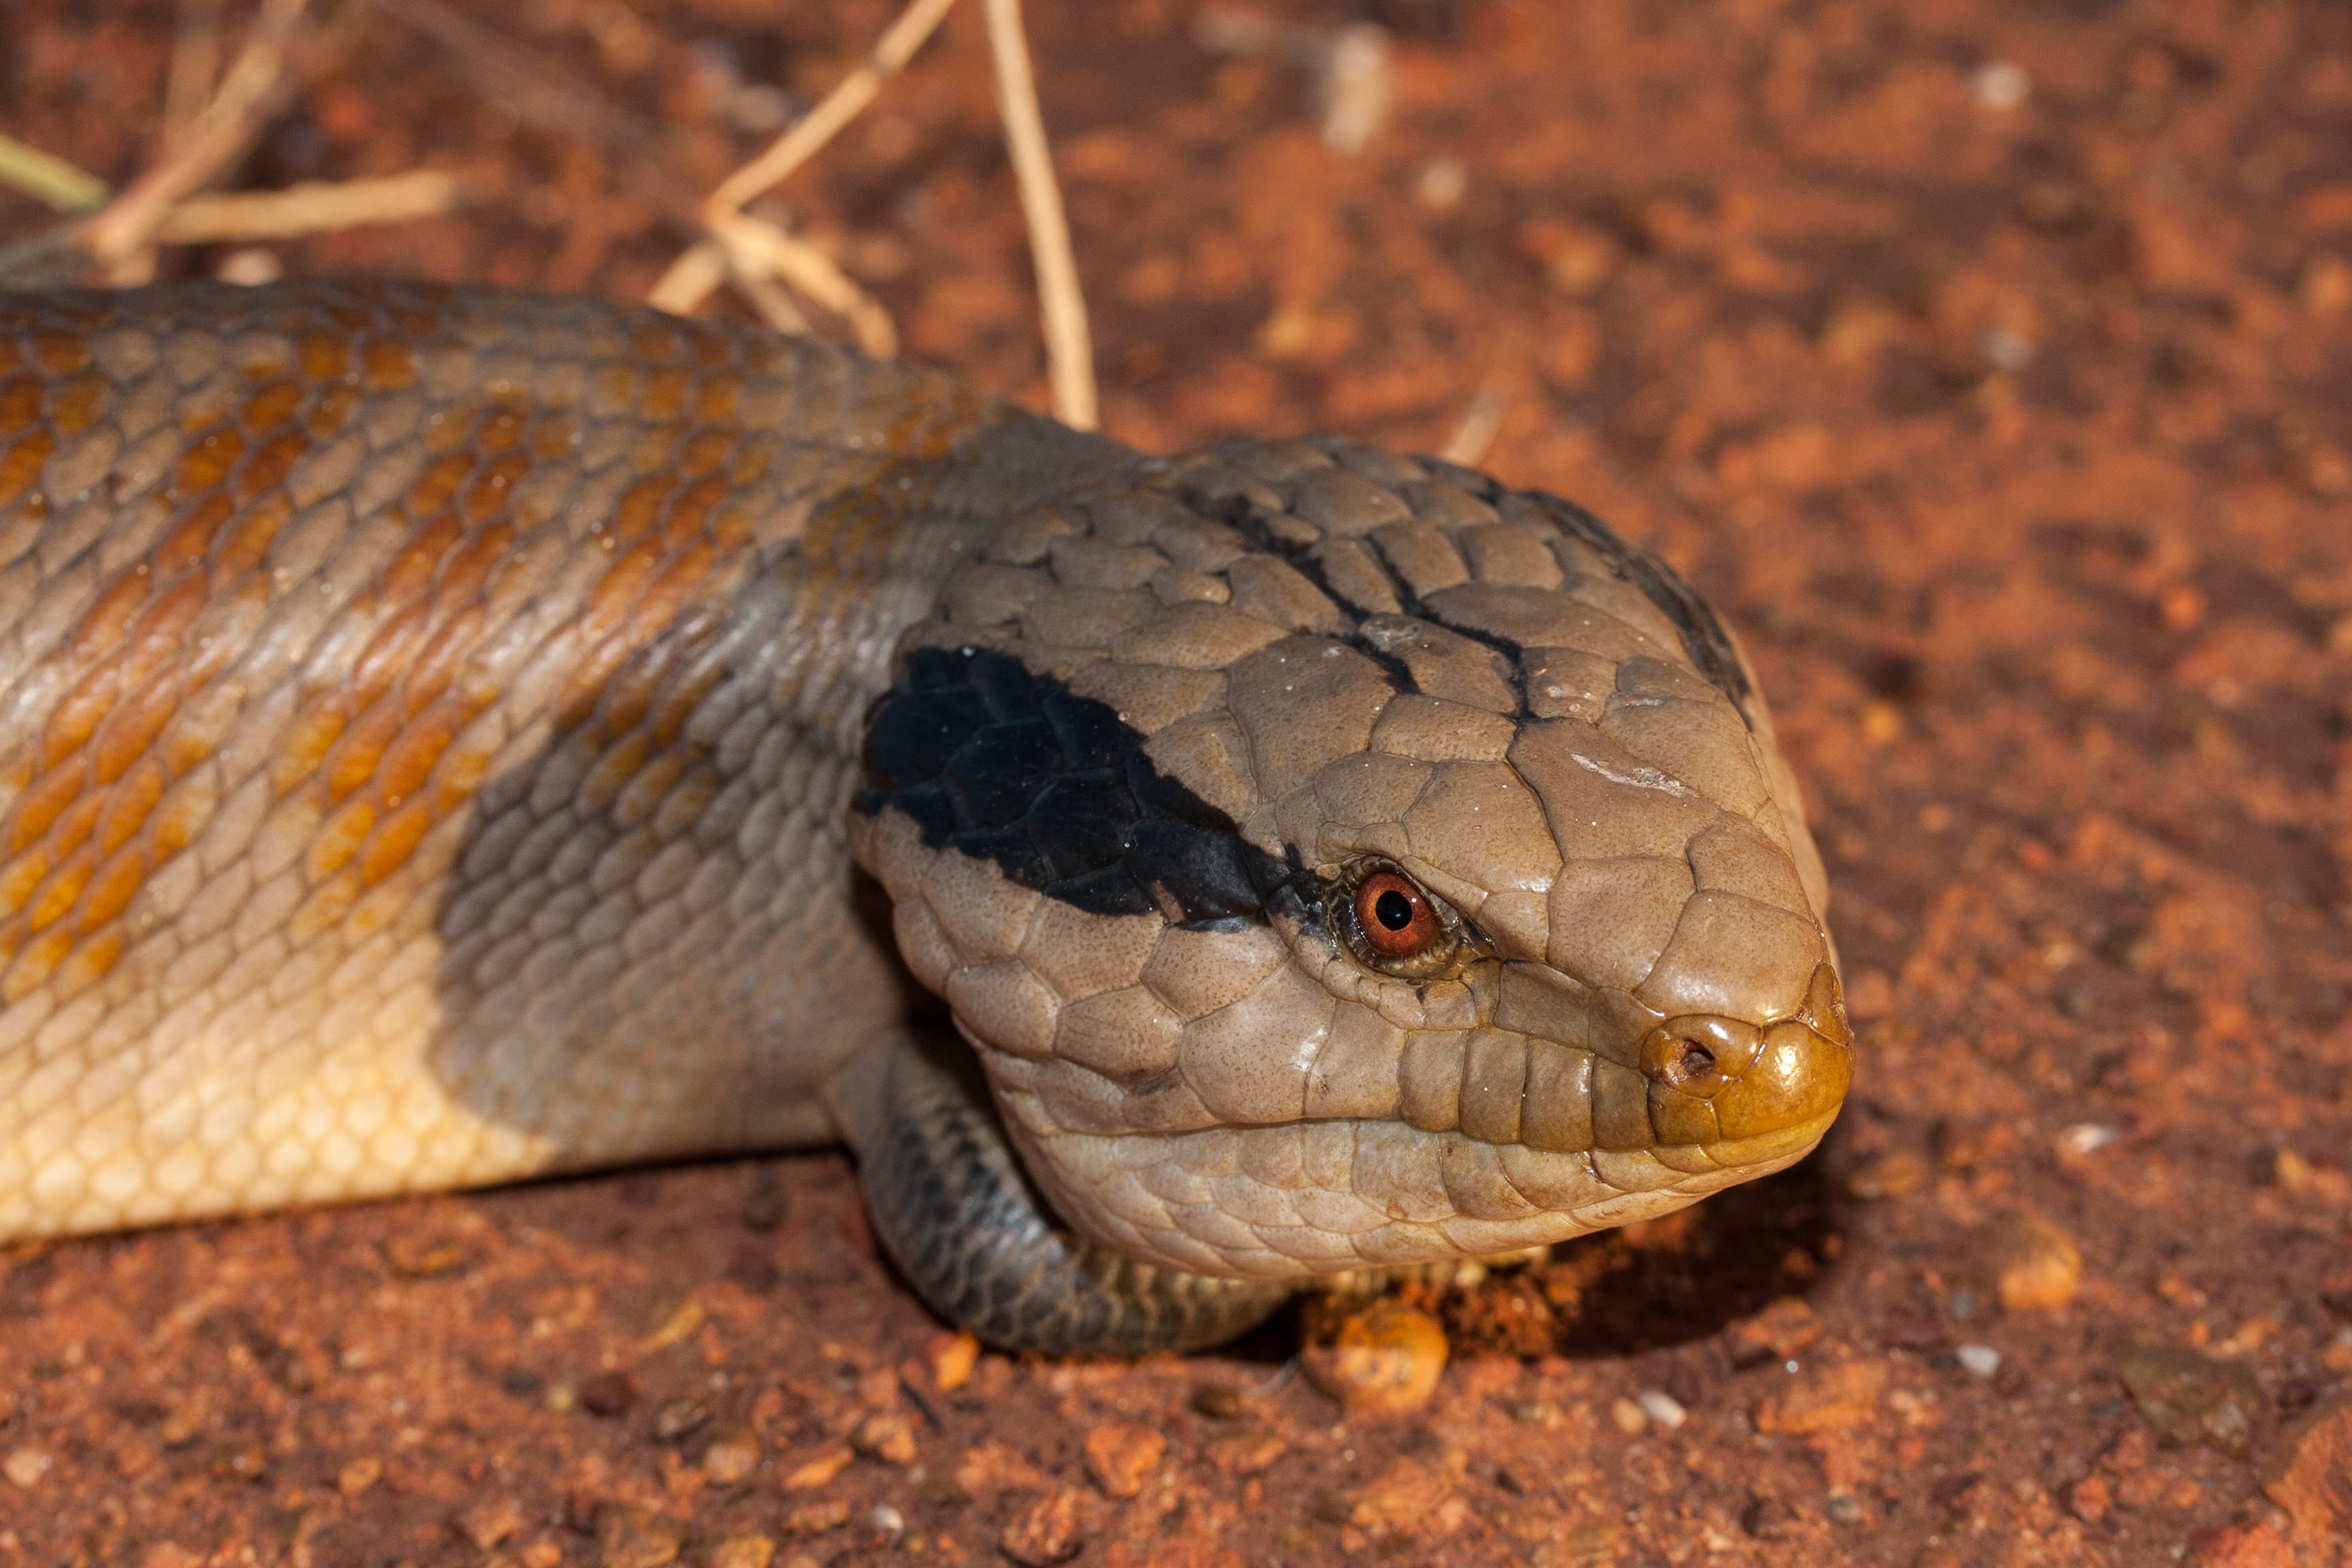 Centralian Blue-tongue Lizard resting on red earth